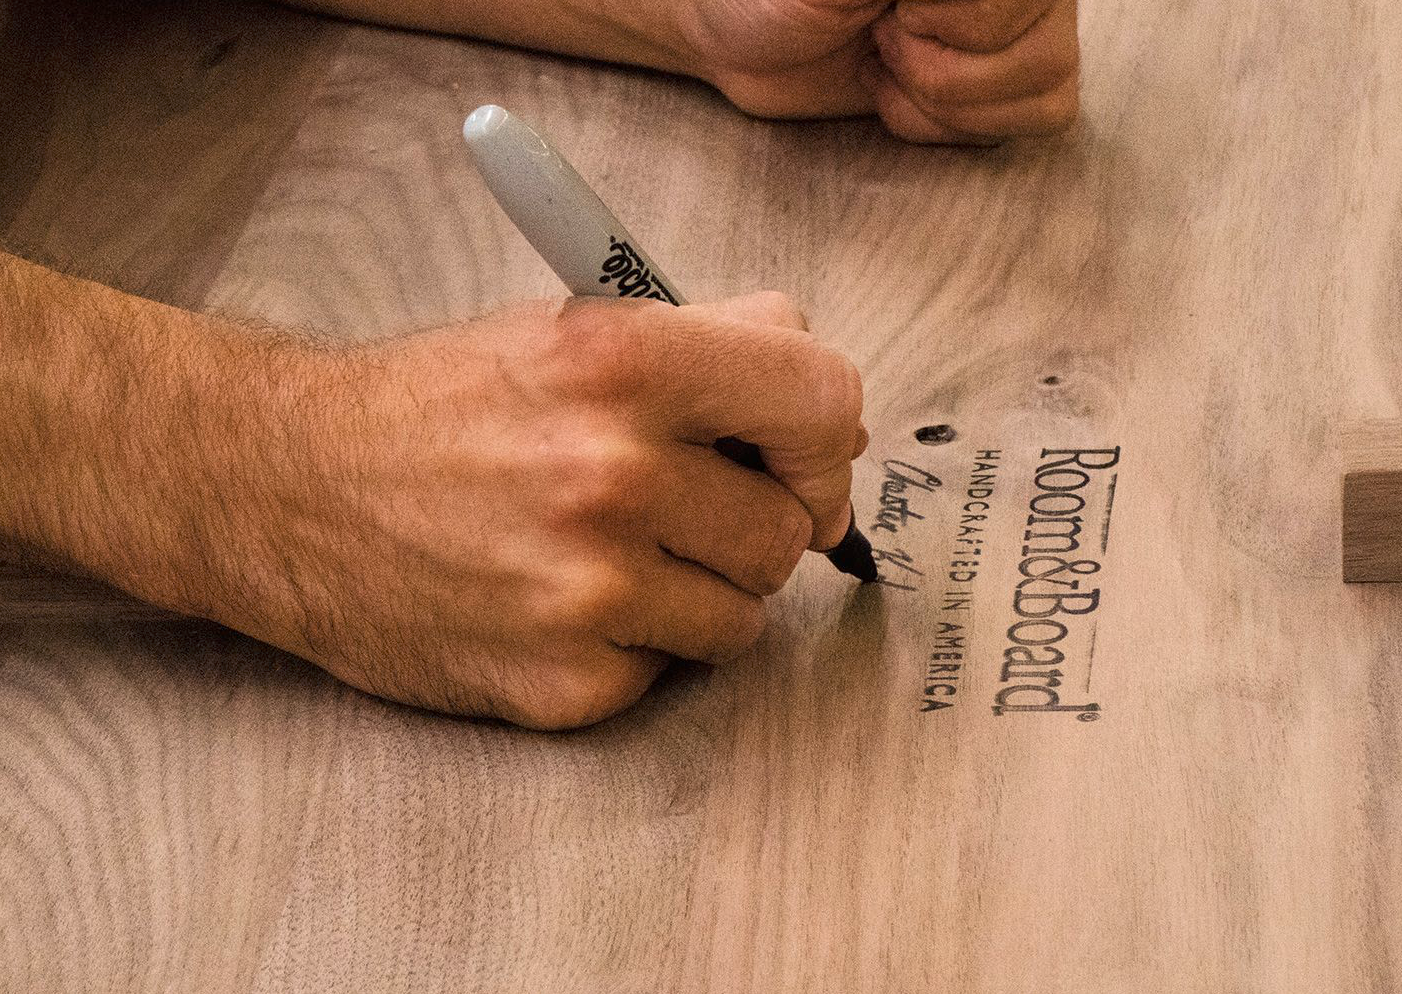 My table for example was made at Caperton Furniture in West Virginia and personally signed by it's maker, Nikki.